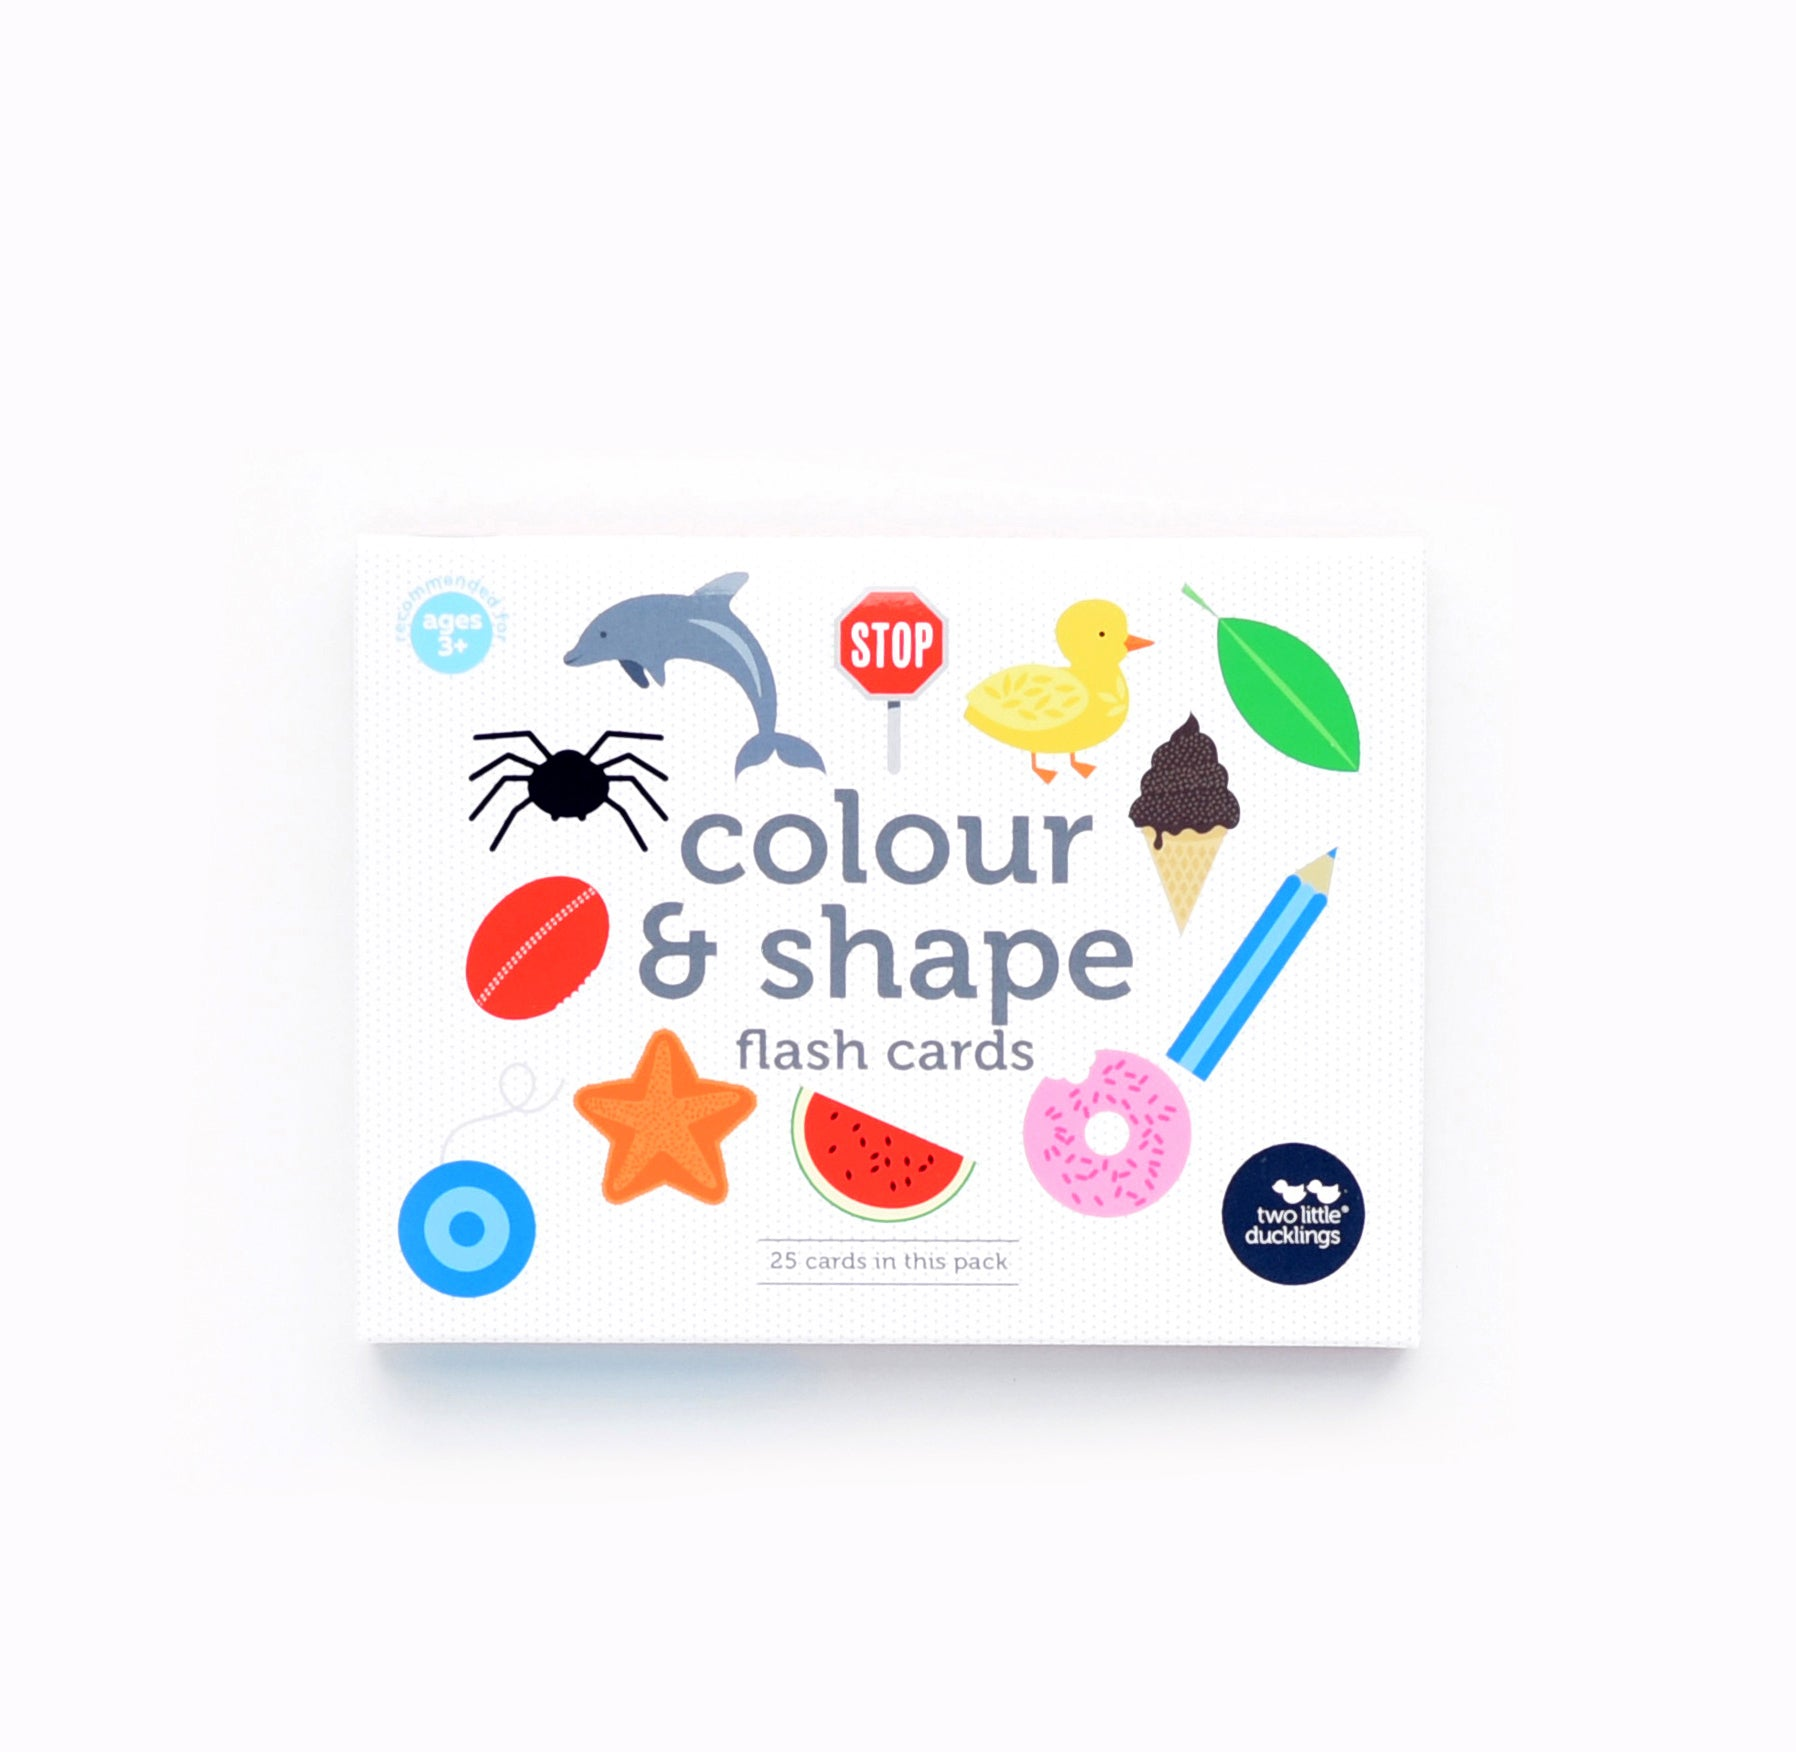 Colour and shape flash cards by Two Little Ducklings  Make learning about colours and shapes fun with this set of brightly-coloured illustrated flash cards. The cards feature 16 colour cards and 9 shape cards.